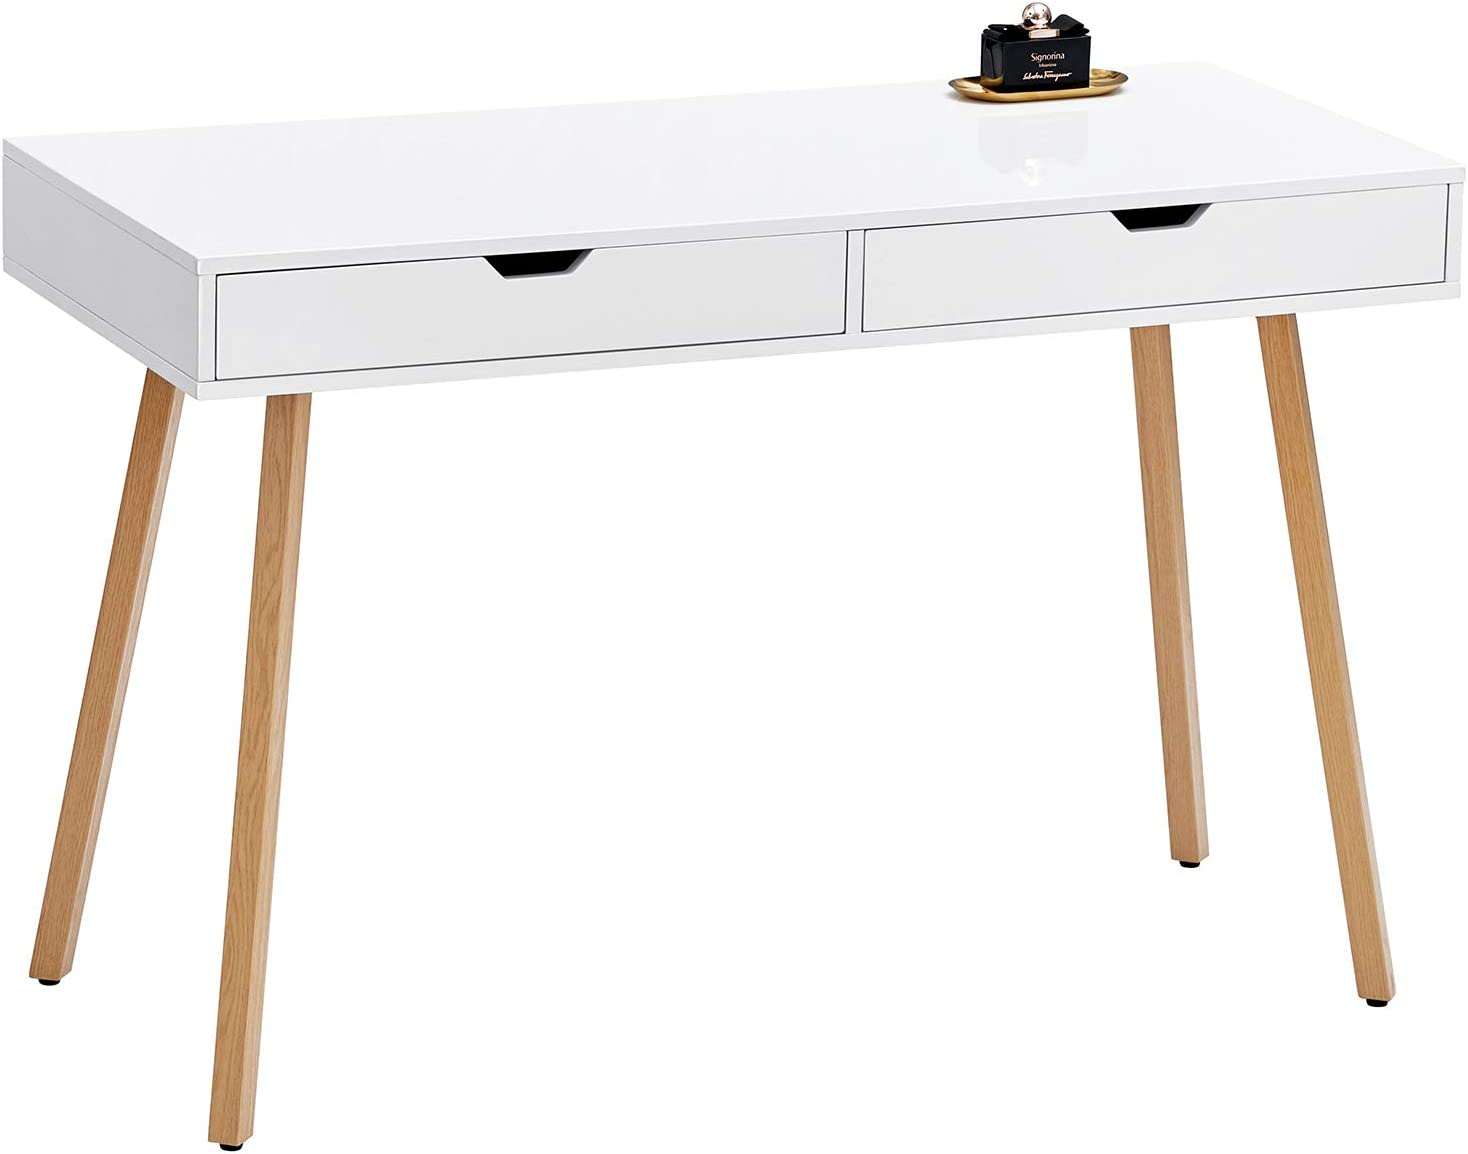 "GreenForest Vanity Desk Computer Writing Desk Large Size 47.2""x19.7"" with Glossy White Tabletop and 2 Drawers Modern Bedroom Makeup Table Home Office Desk"